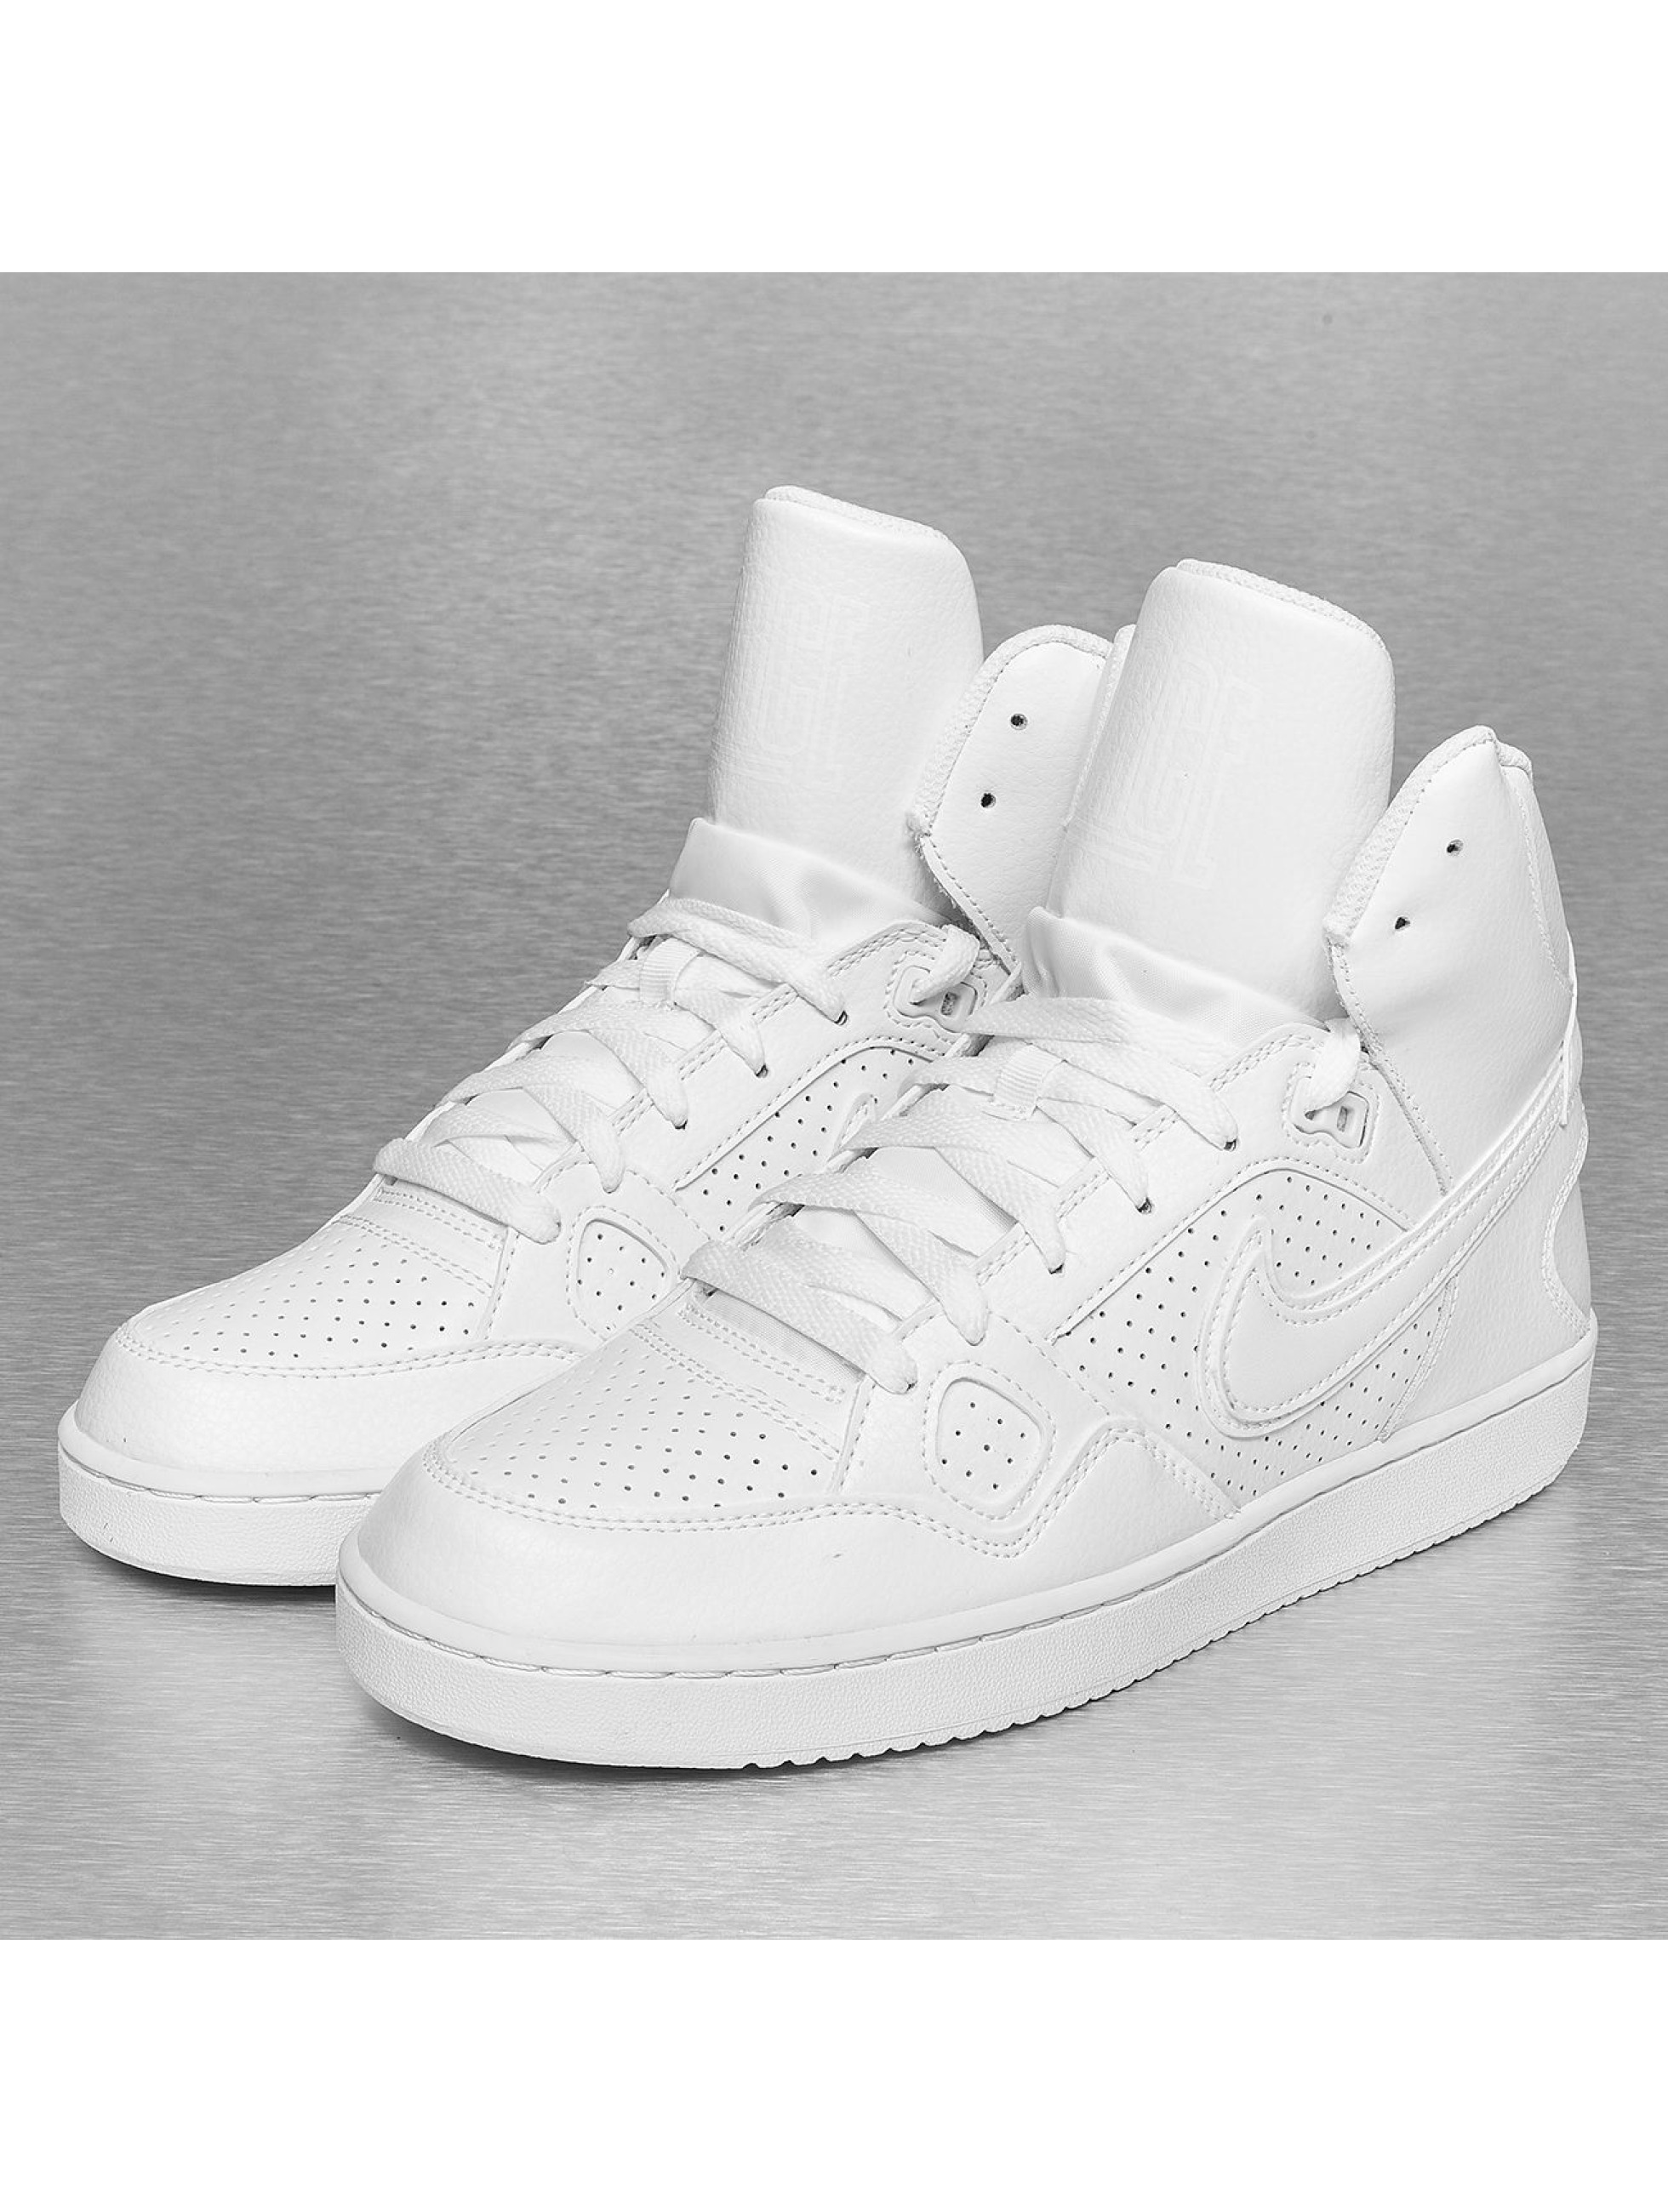 NIKE Baskets Wmn Son Of Force Mid Chaussure Femme